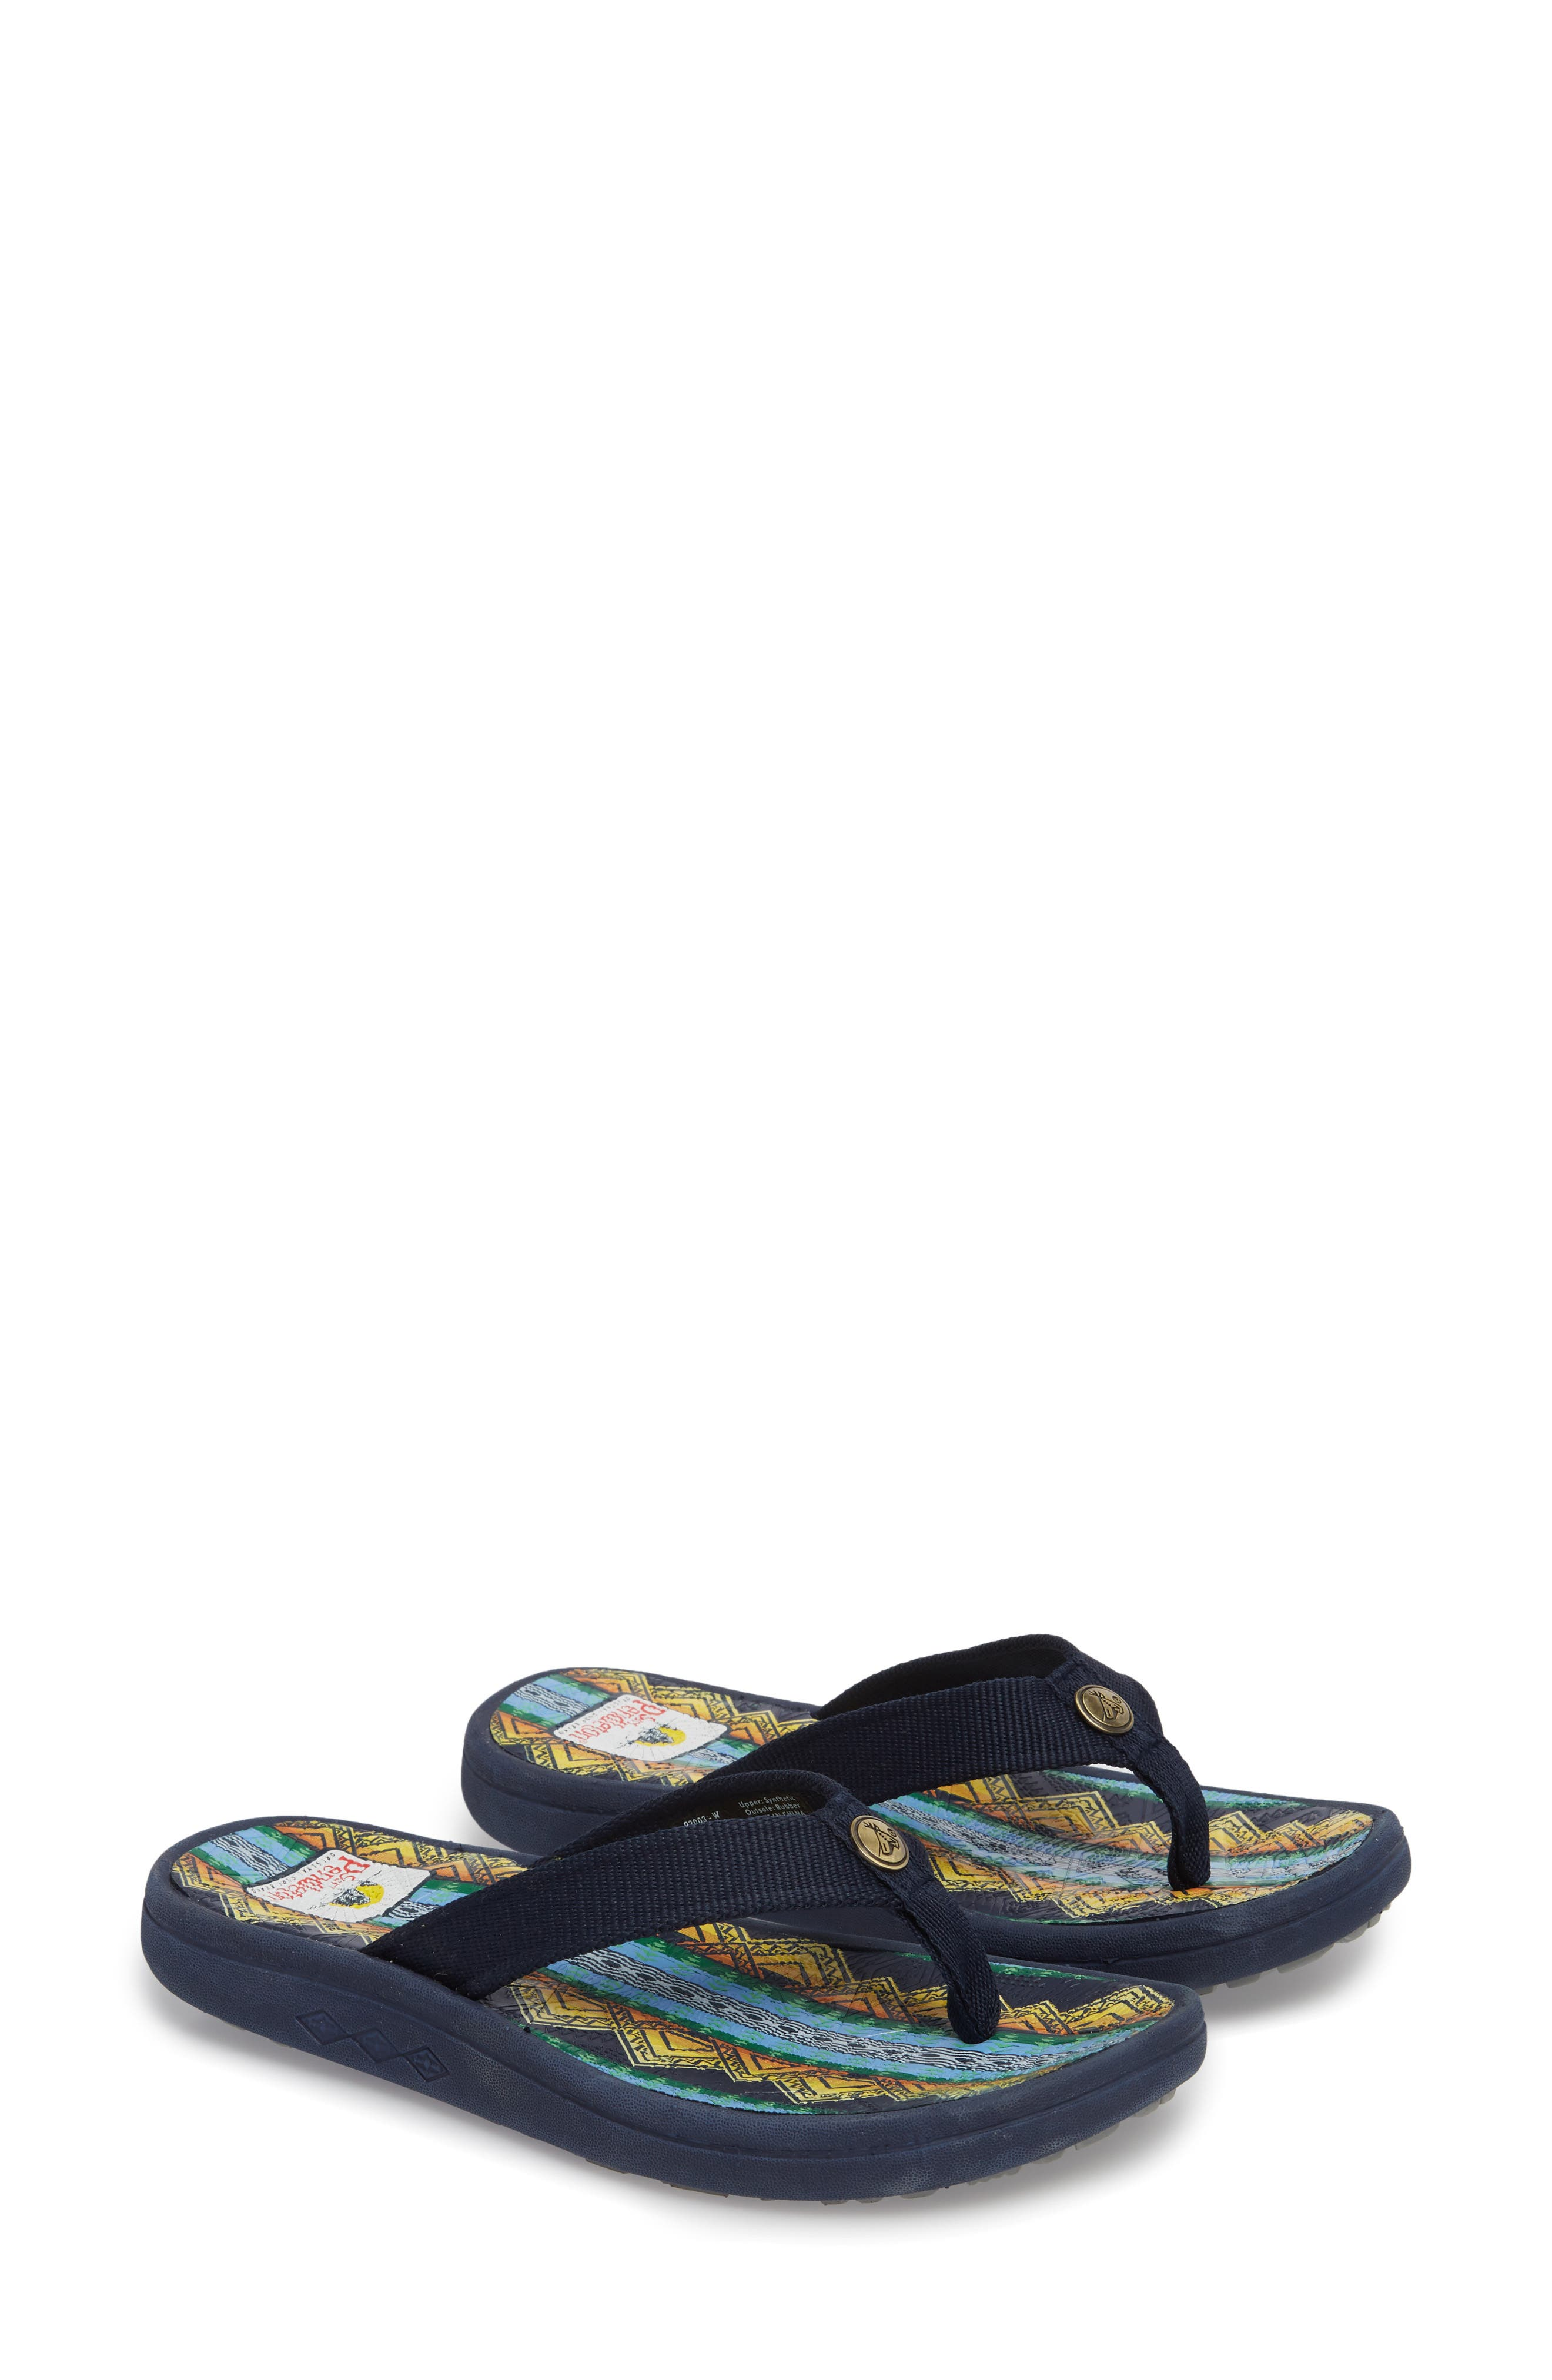 Pendleton American Treasures Flip Flop,                             Alternate thumbnail 2, color,                             NAVY